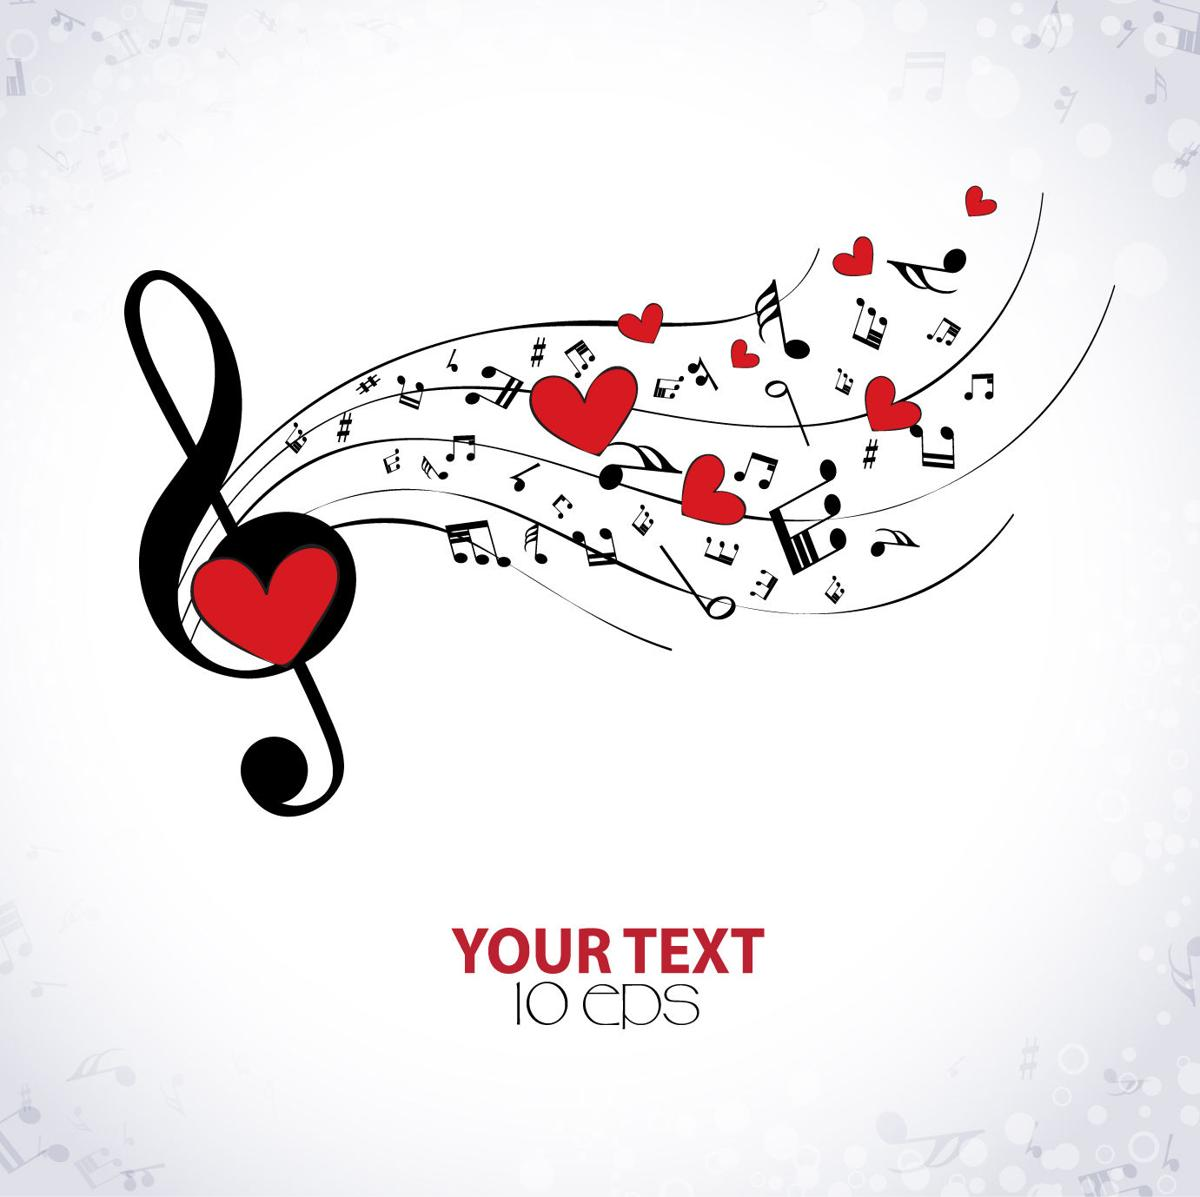 Say 'I love you' with music